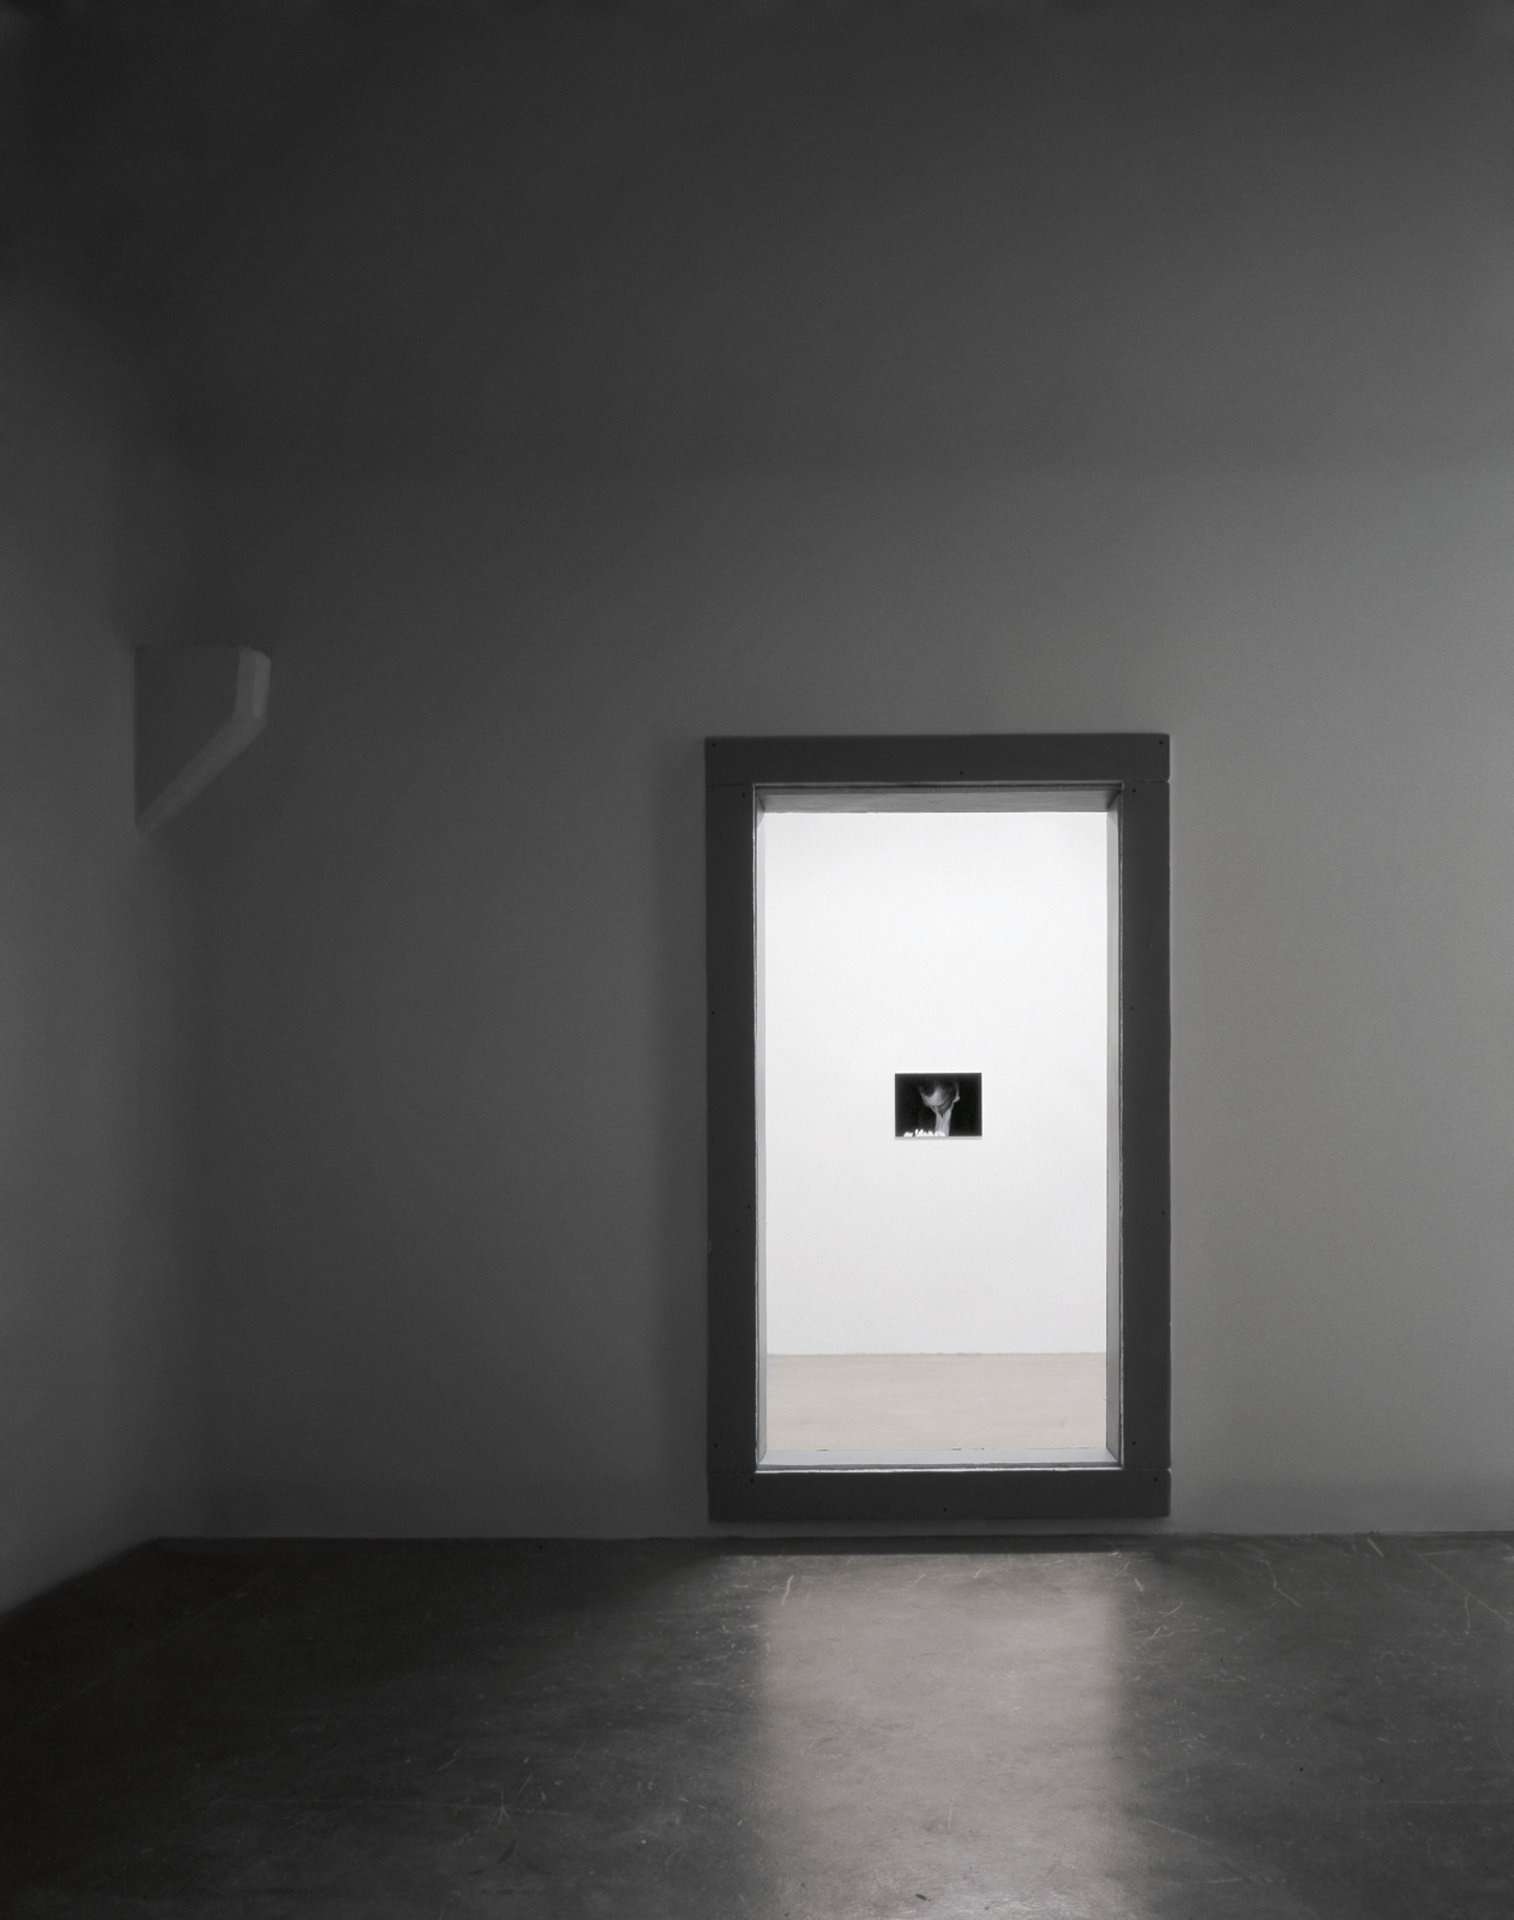 Untitled (Door)